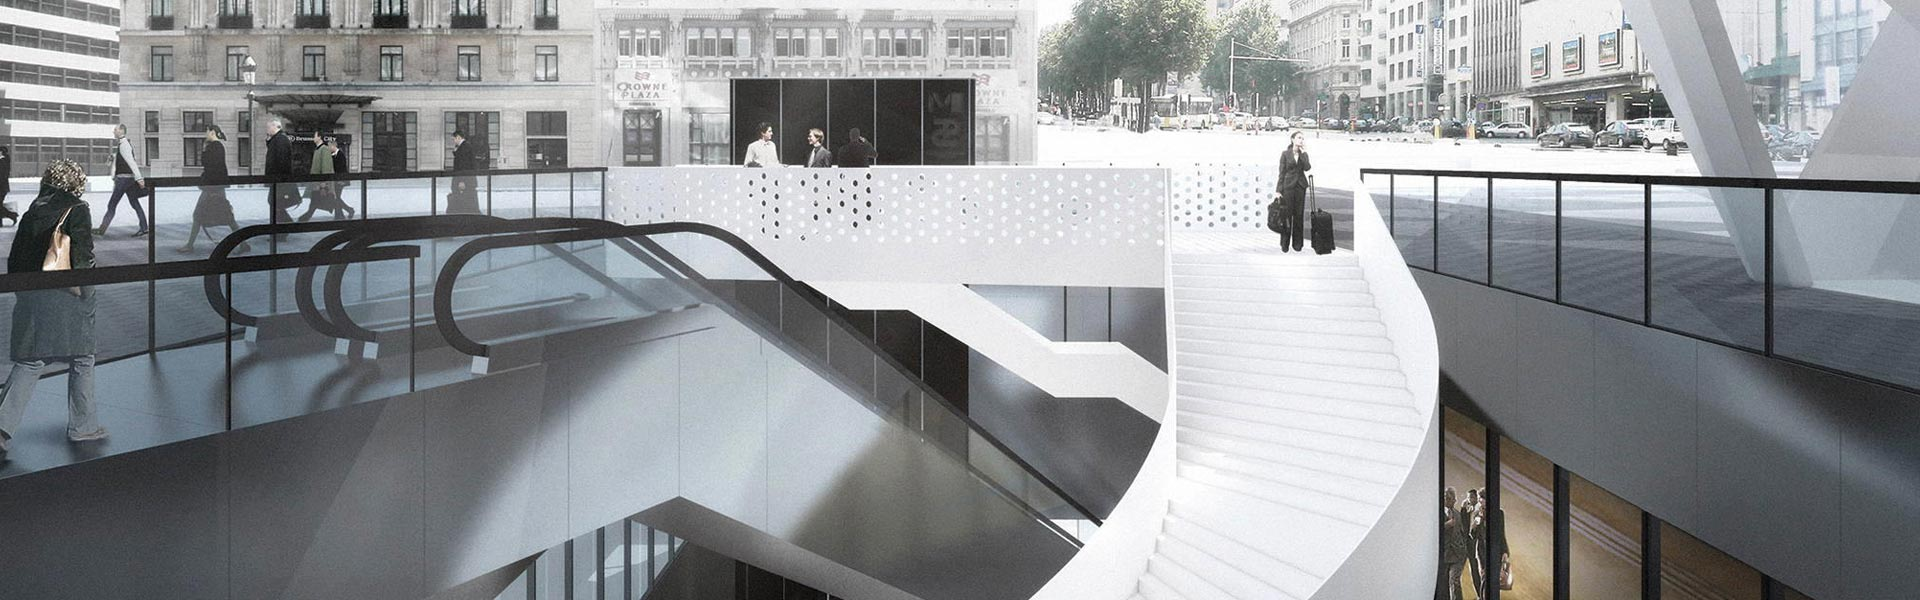 1_Renovation and redesign of the Rogier square and station 1